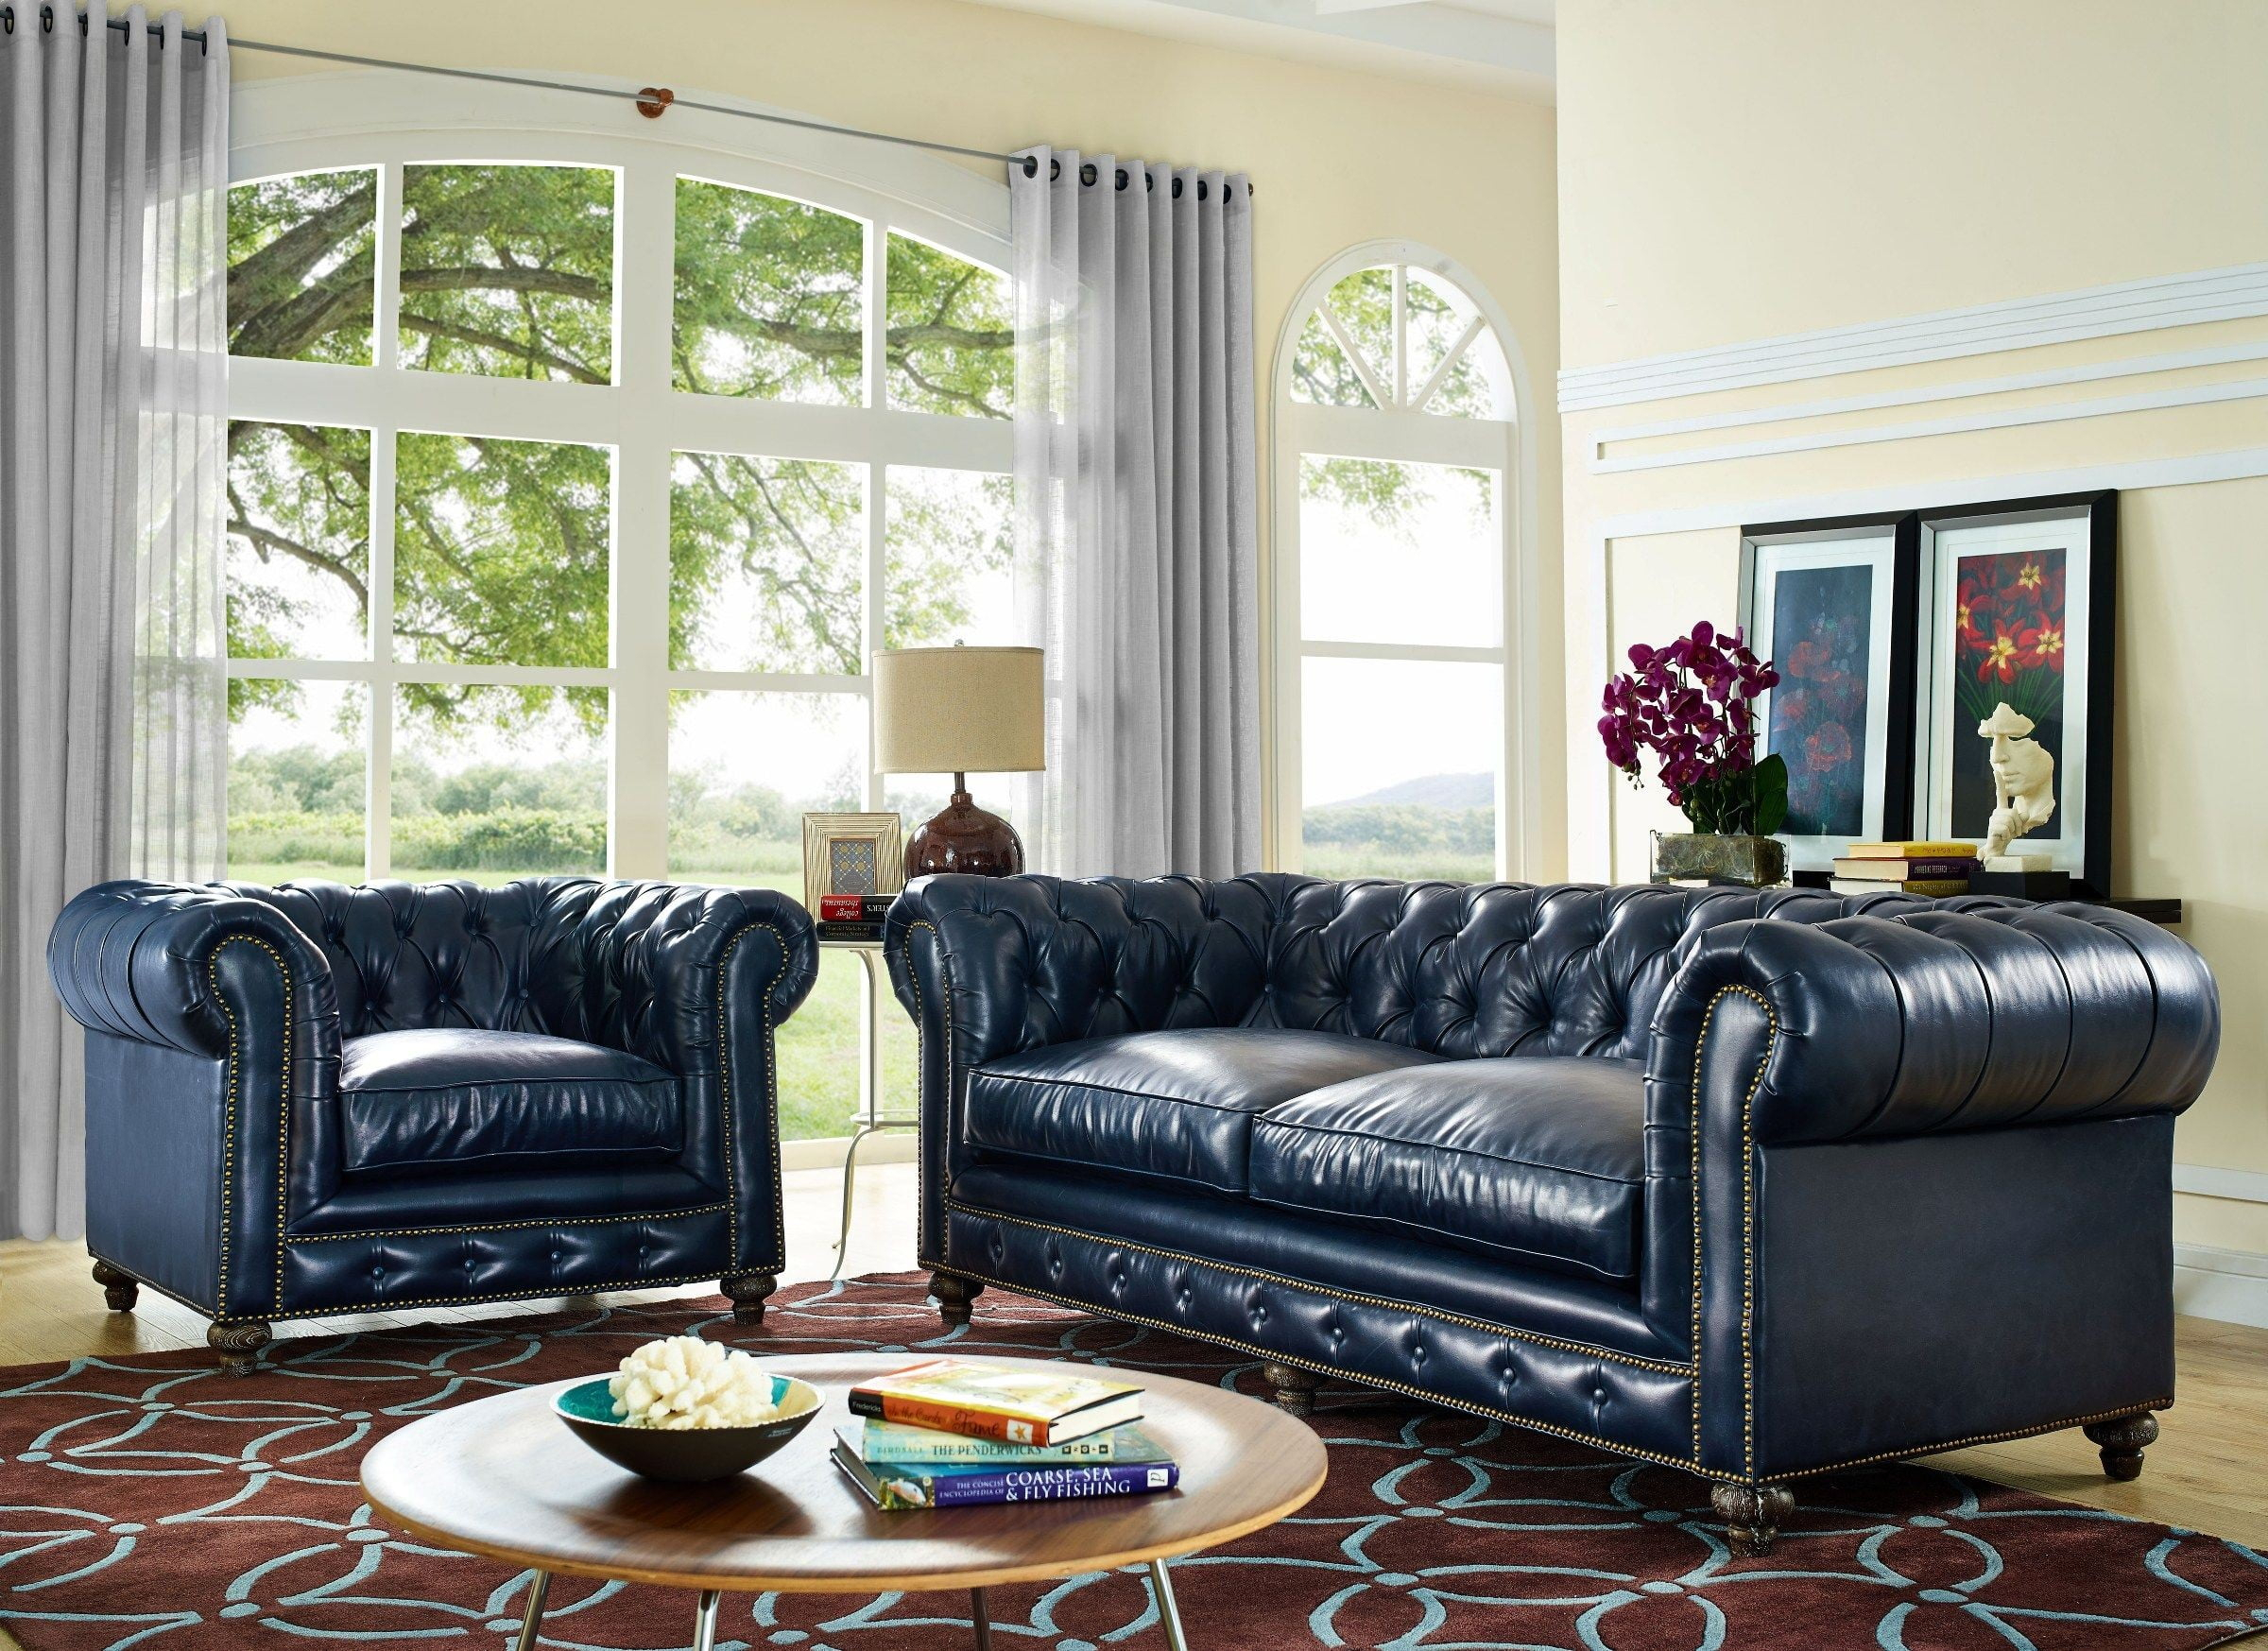 Durango Rustic Blue Leather Sofa From Tov (S38) | Coleman With Regard To Blue Sofa Chairs (View 11 of 15)